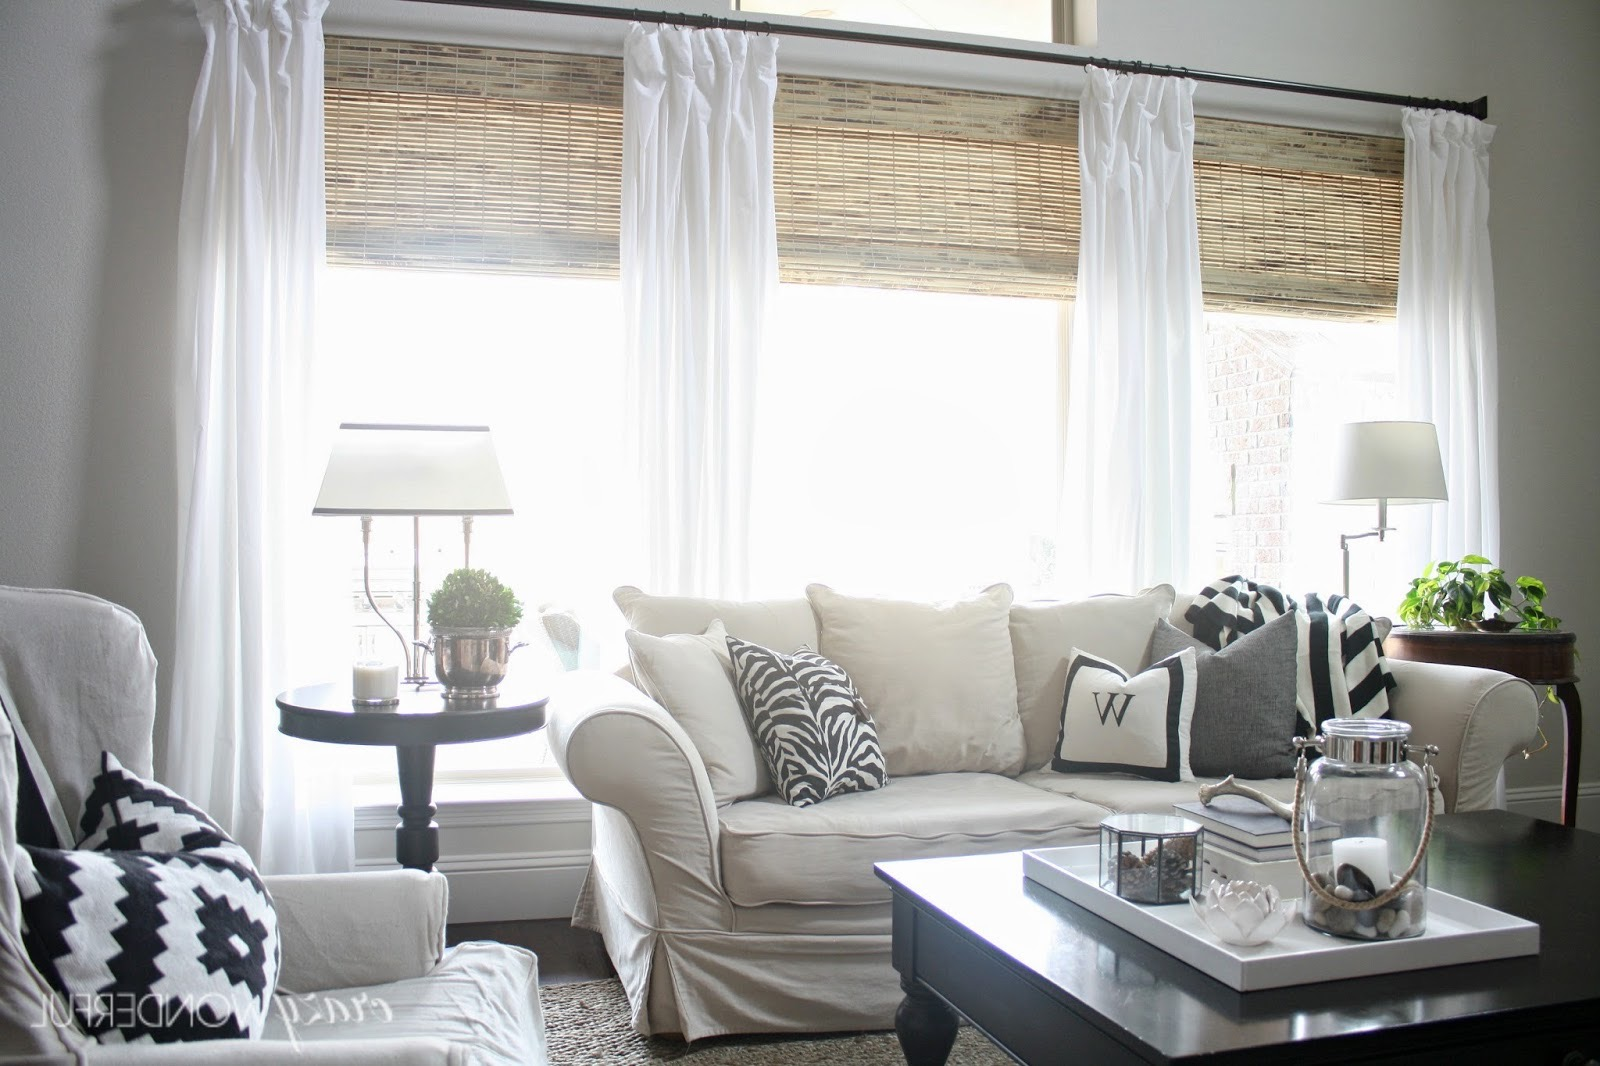 Bamboo Curtain And White Sheer Curtain Combo For Living Room (Image 1 of 20)